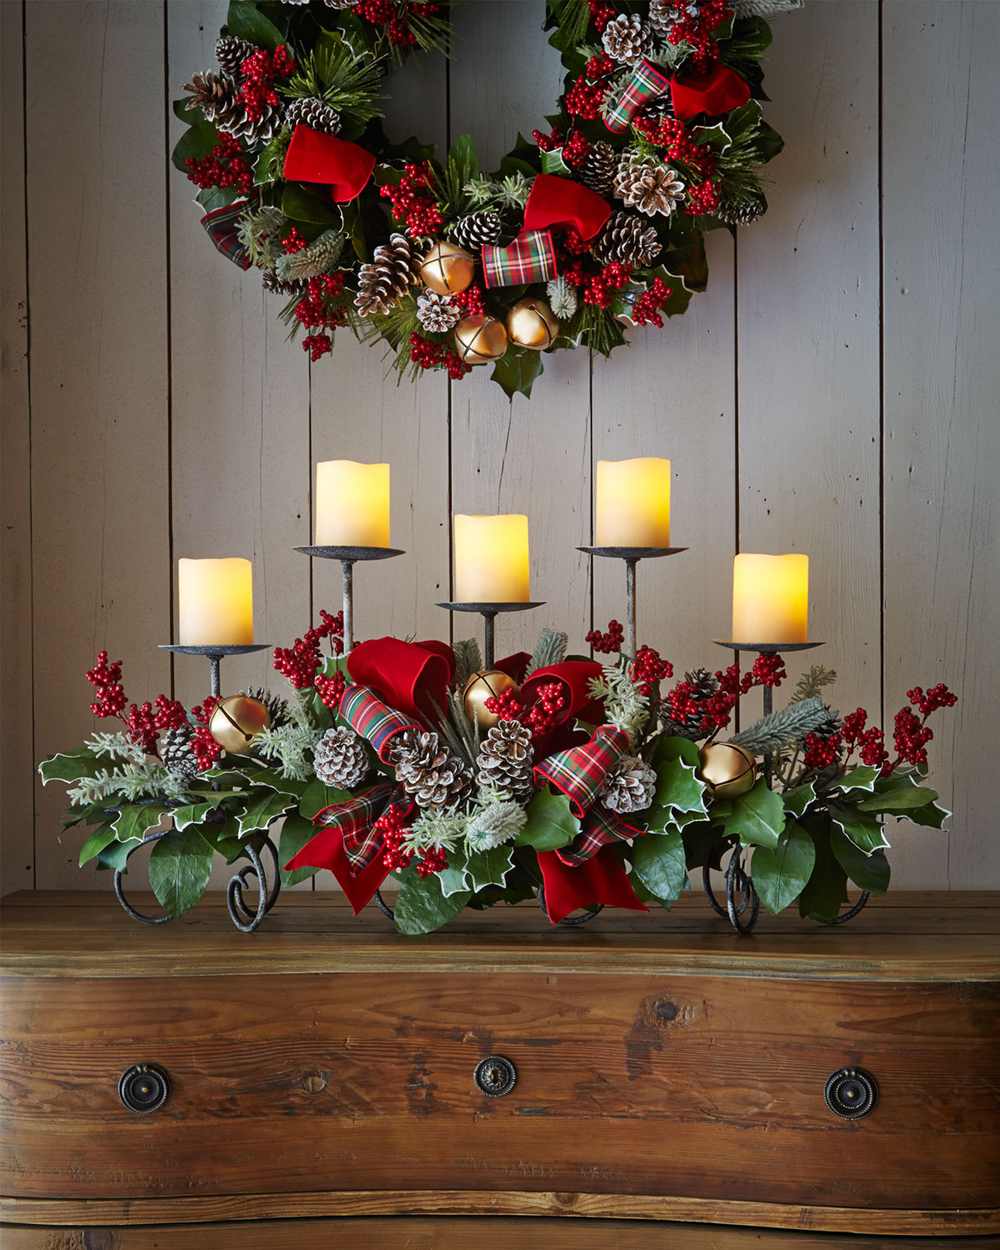 rustic christmas decorations - Christmas Flower Decorations